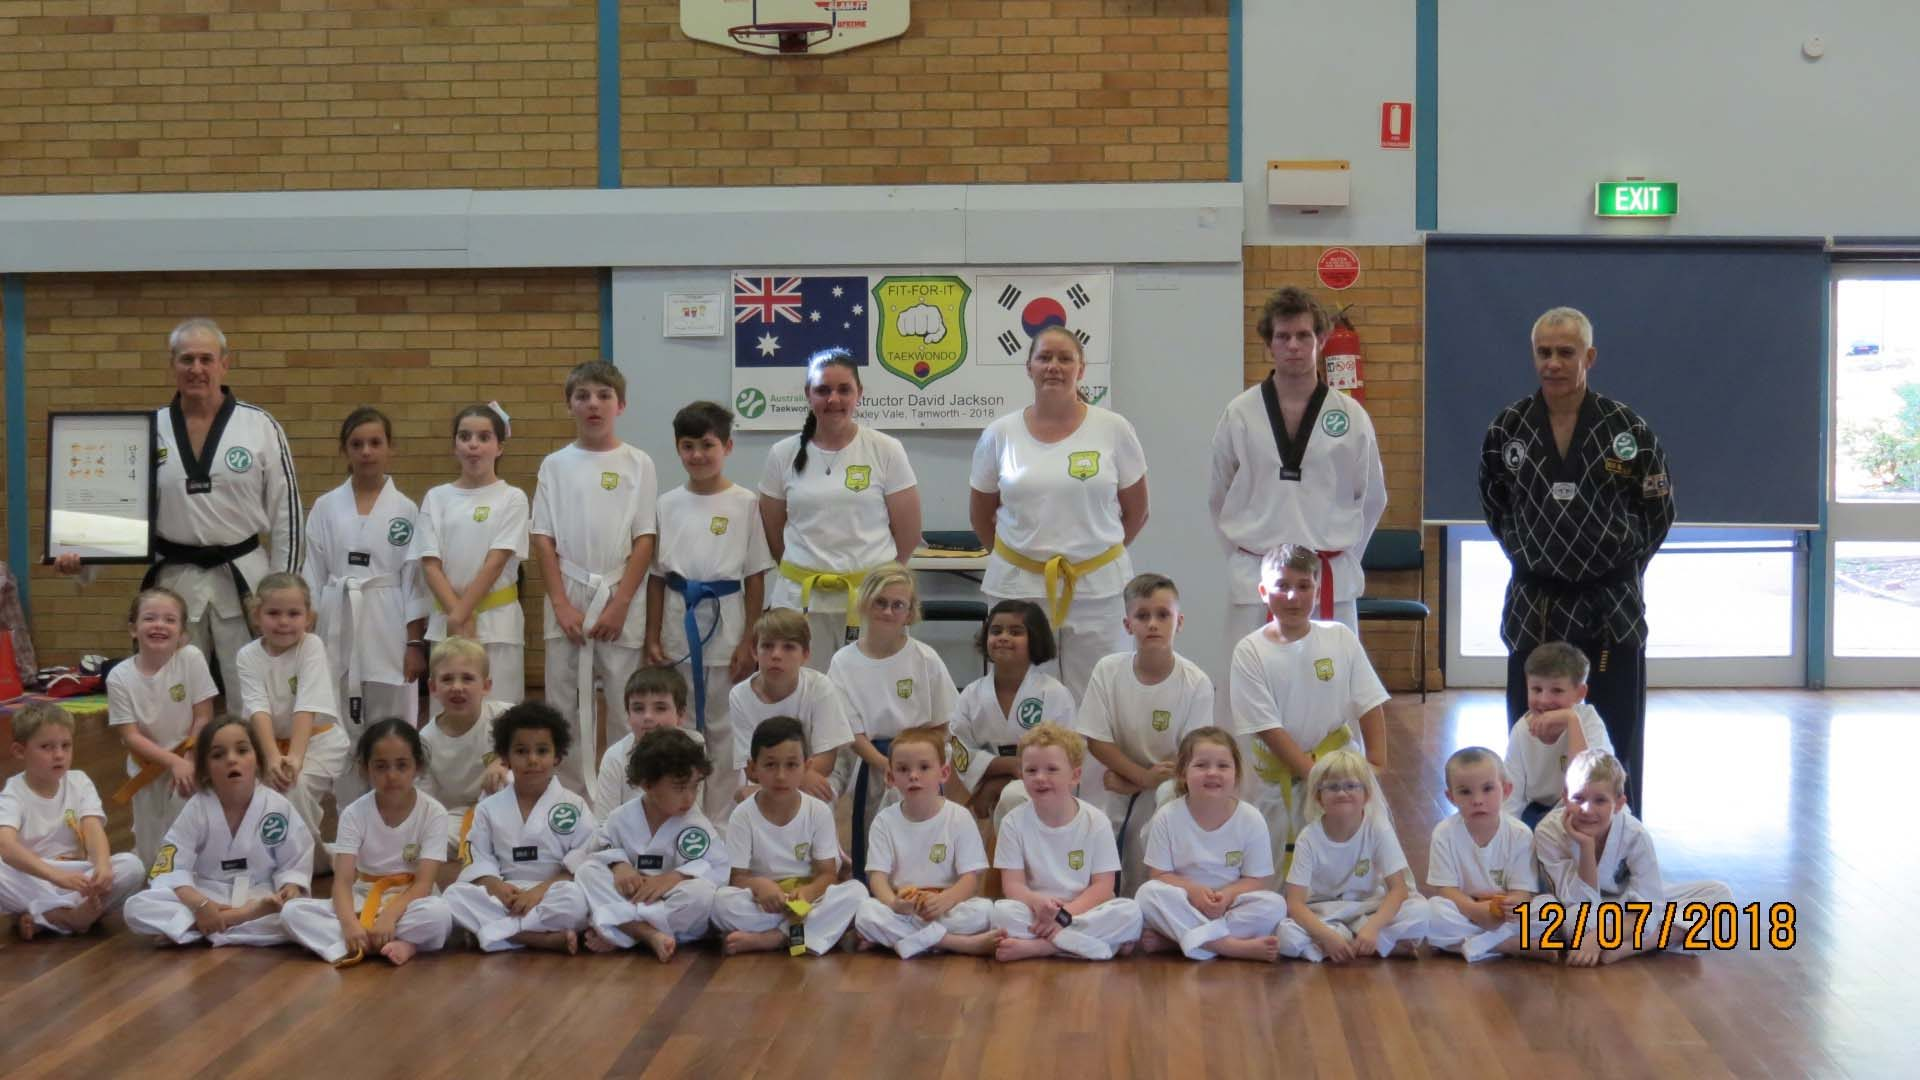 A group photo of the Tamworth Martial Arts students at the second Fit For It Taekwondo Grade Testing in Tamworth.